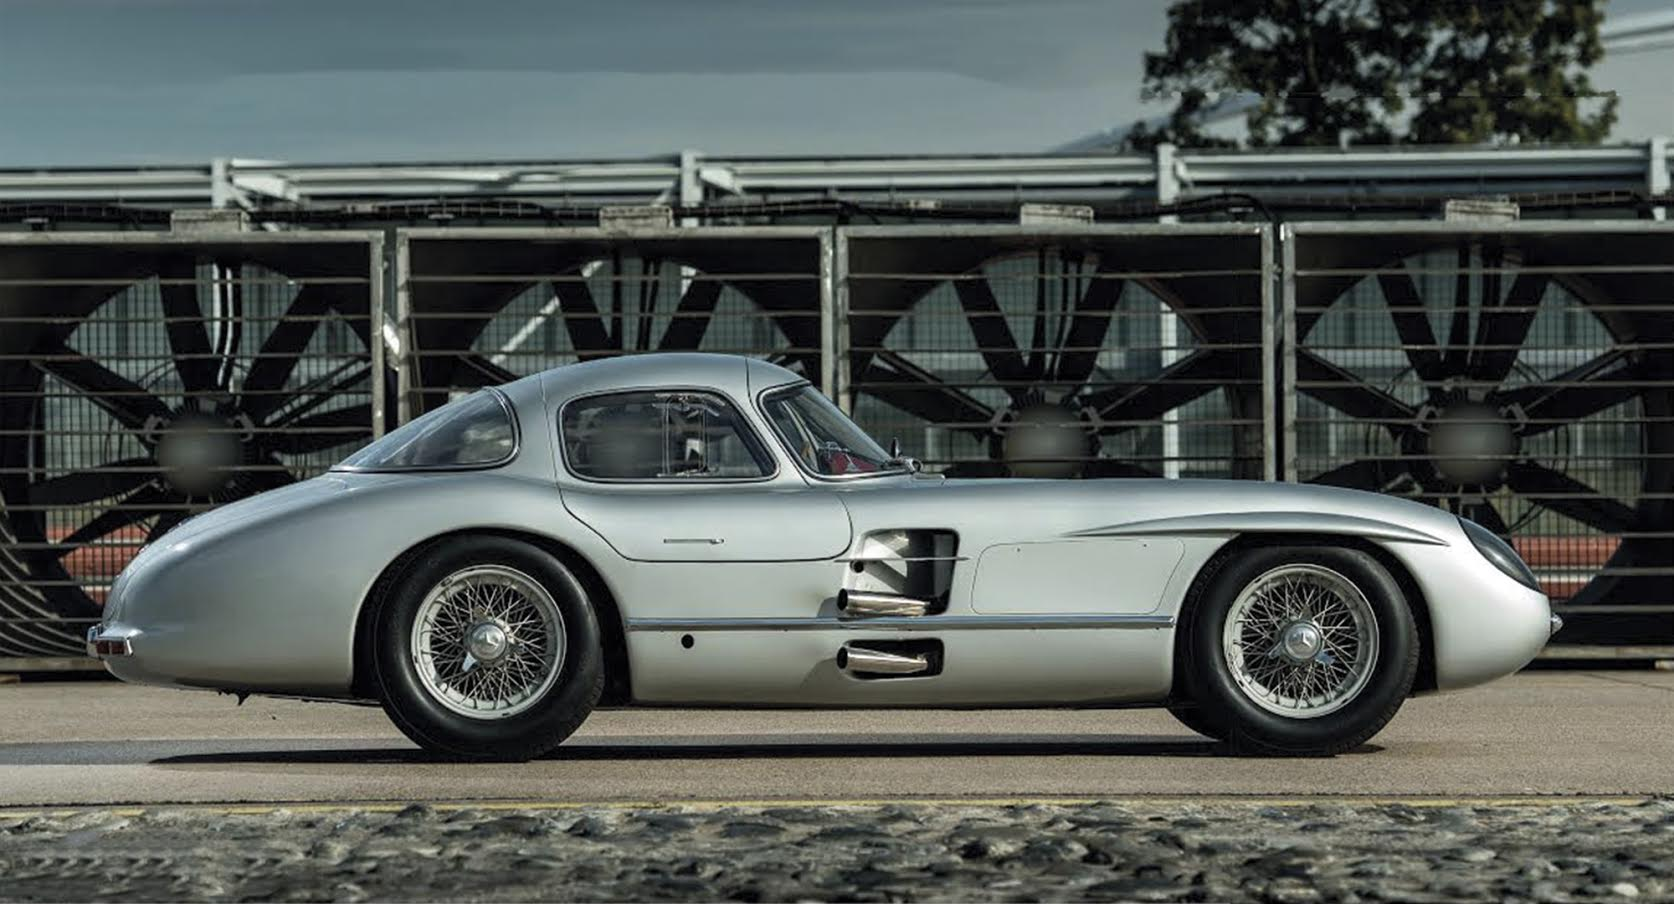 Mercedes Benz 300 Slr Uhlenhaut Coupe An All Time Legend Carlassic